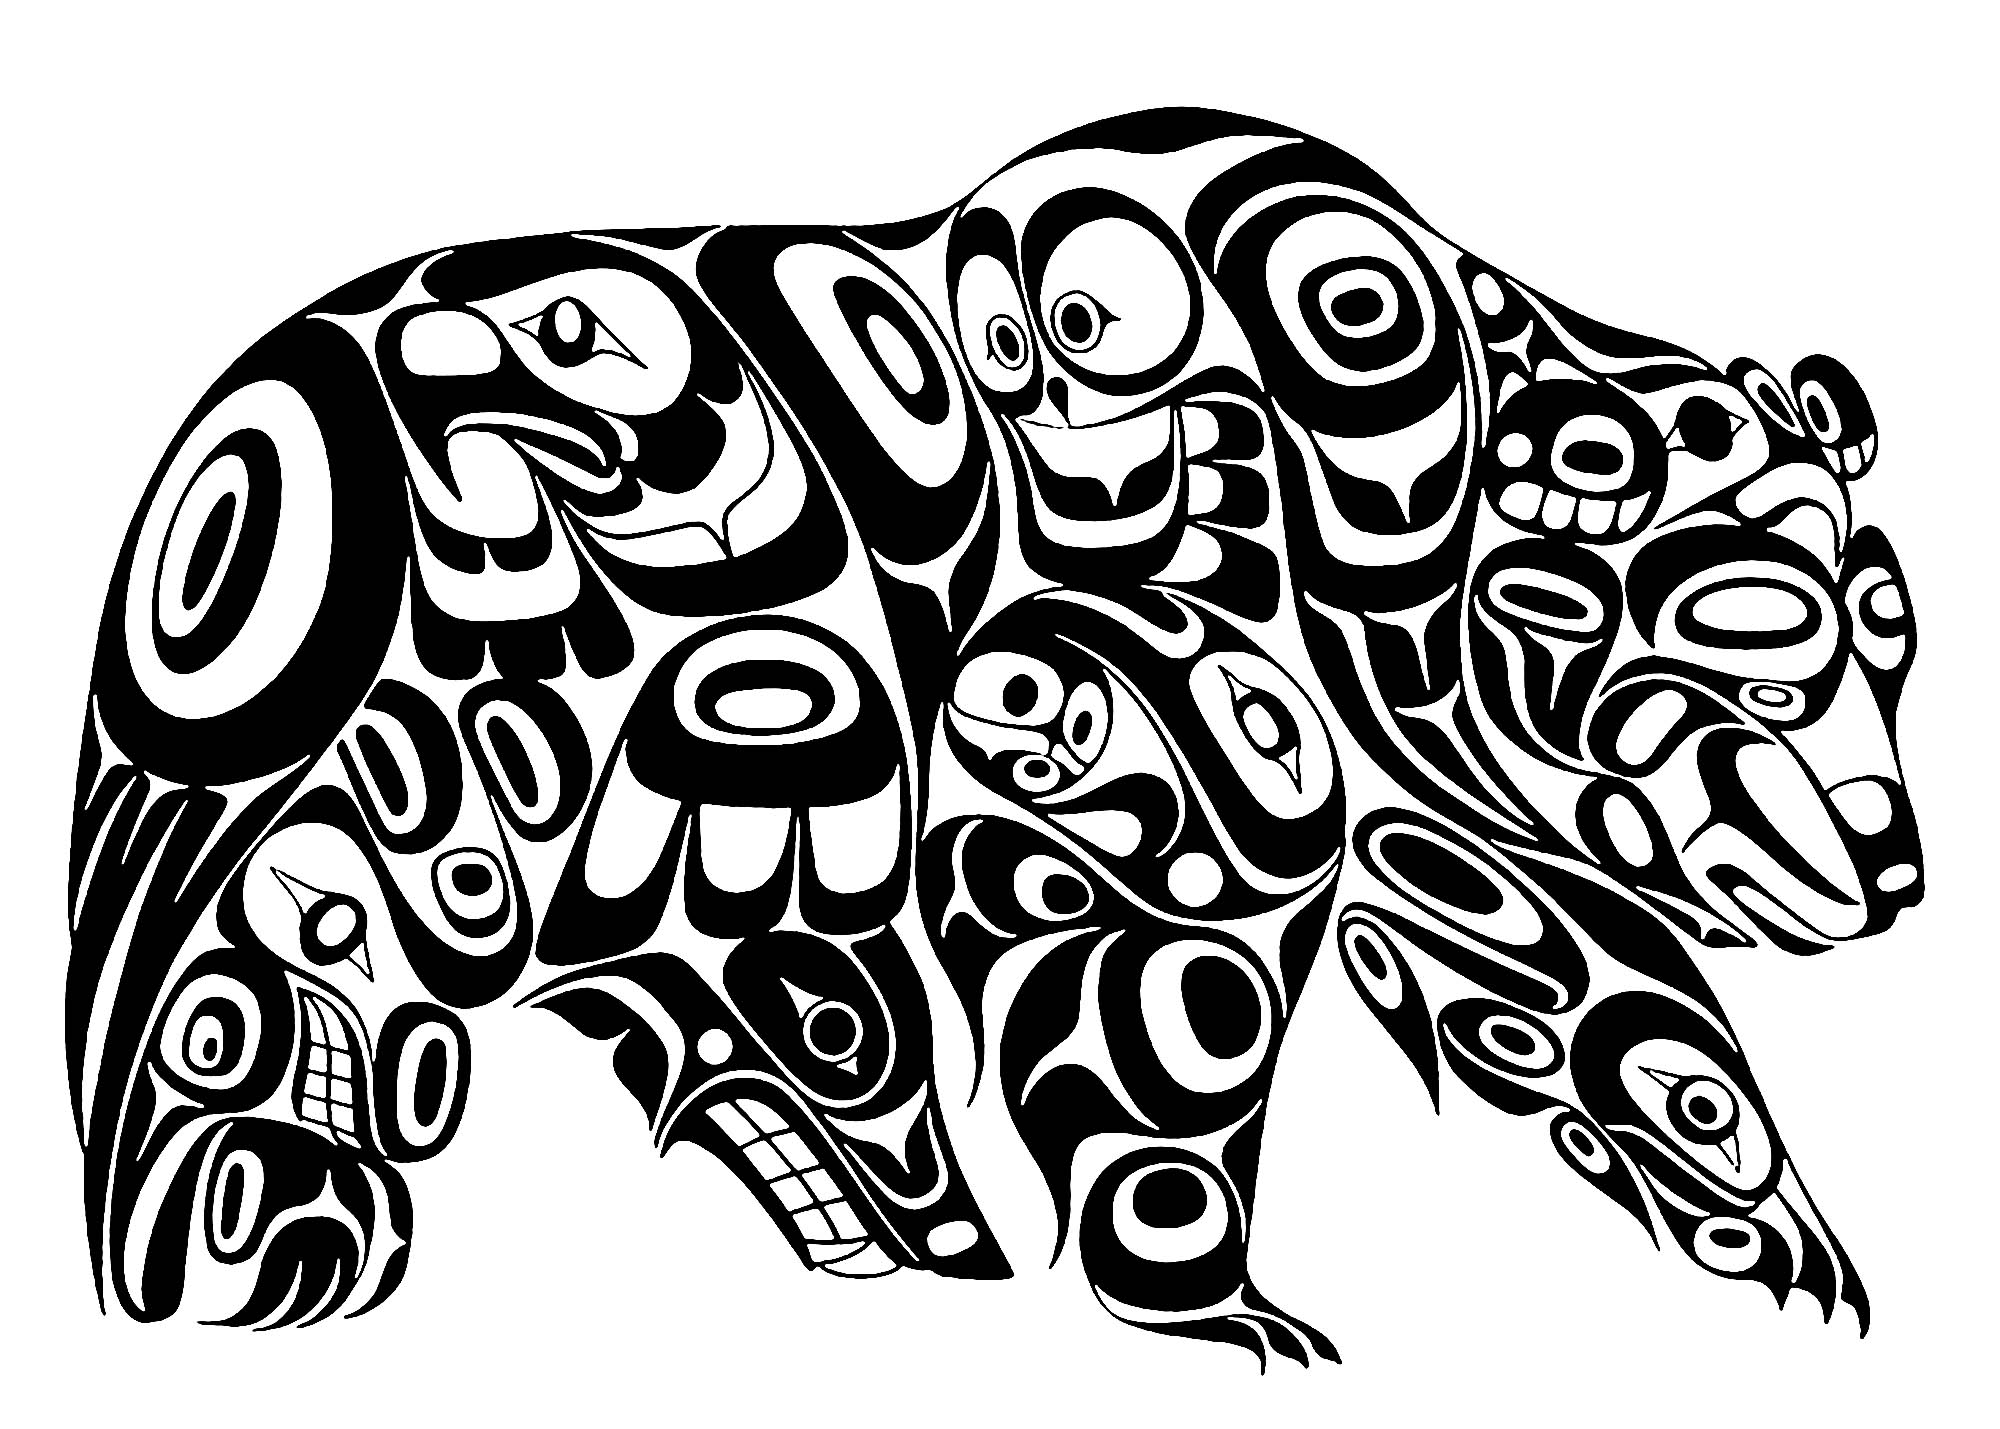 Art northwest coastal people grizzly - Native American Art Adult ...